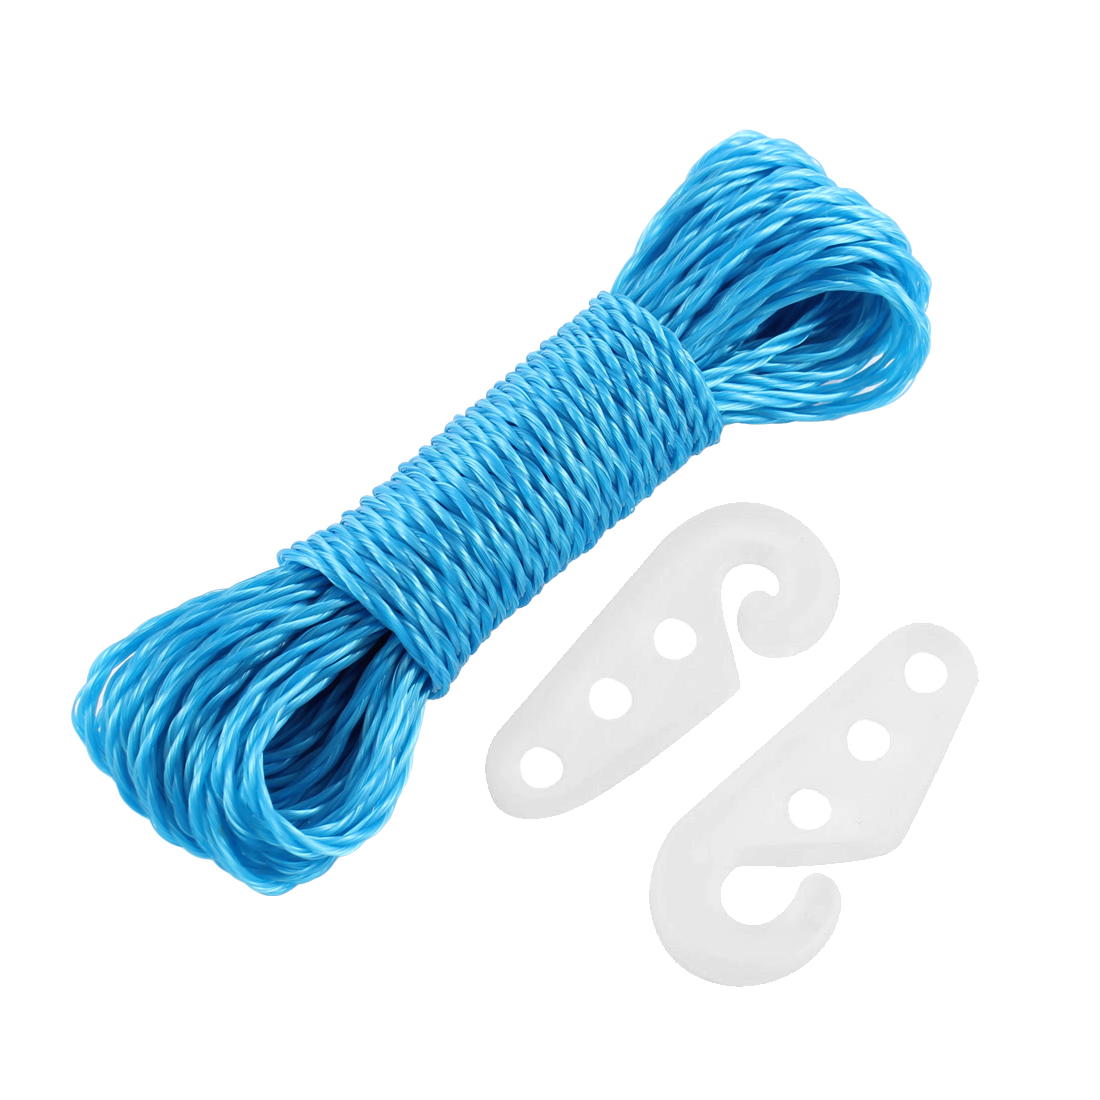 Camping Indoor Outdoor Laundry Blue Nylon Clothesline Housekeeping Cloths Line Rope String 33Ft 10Meters Length